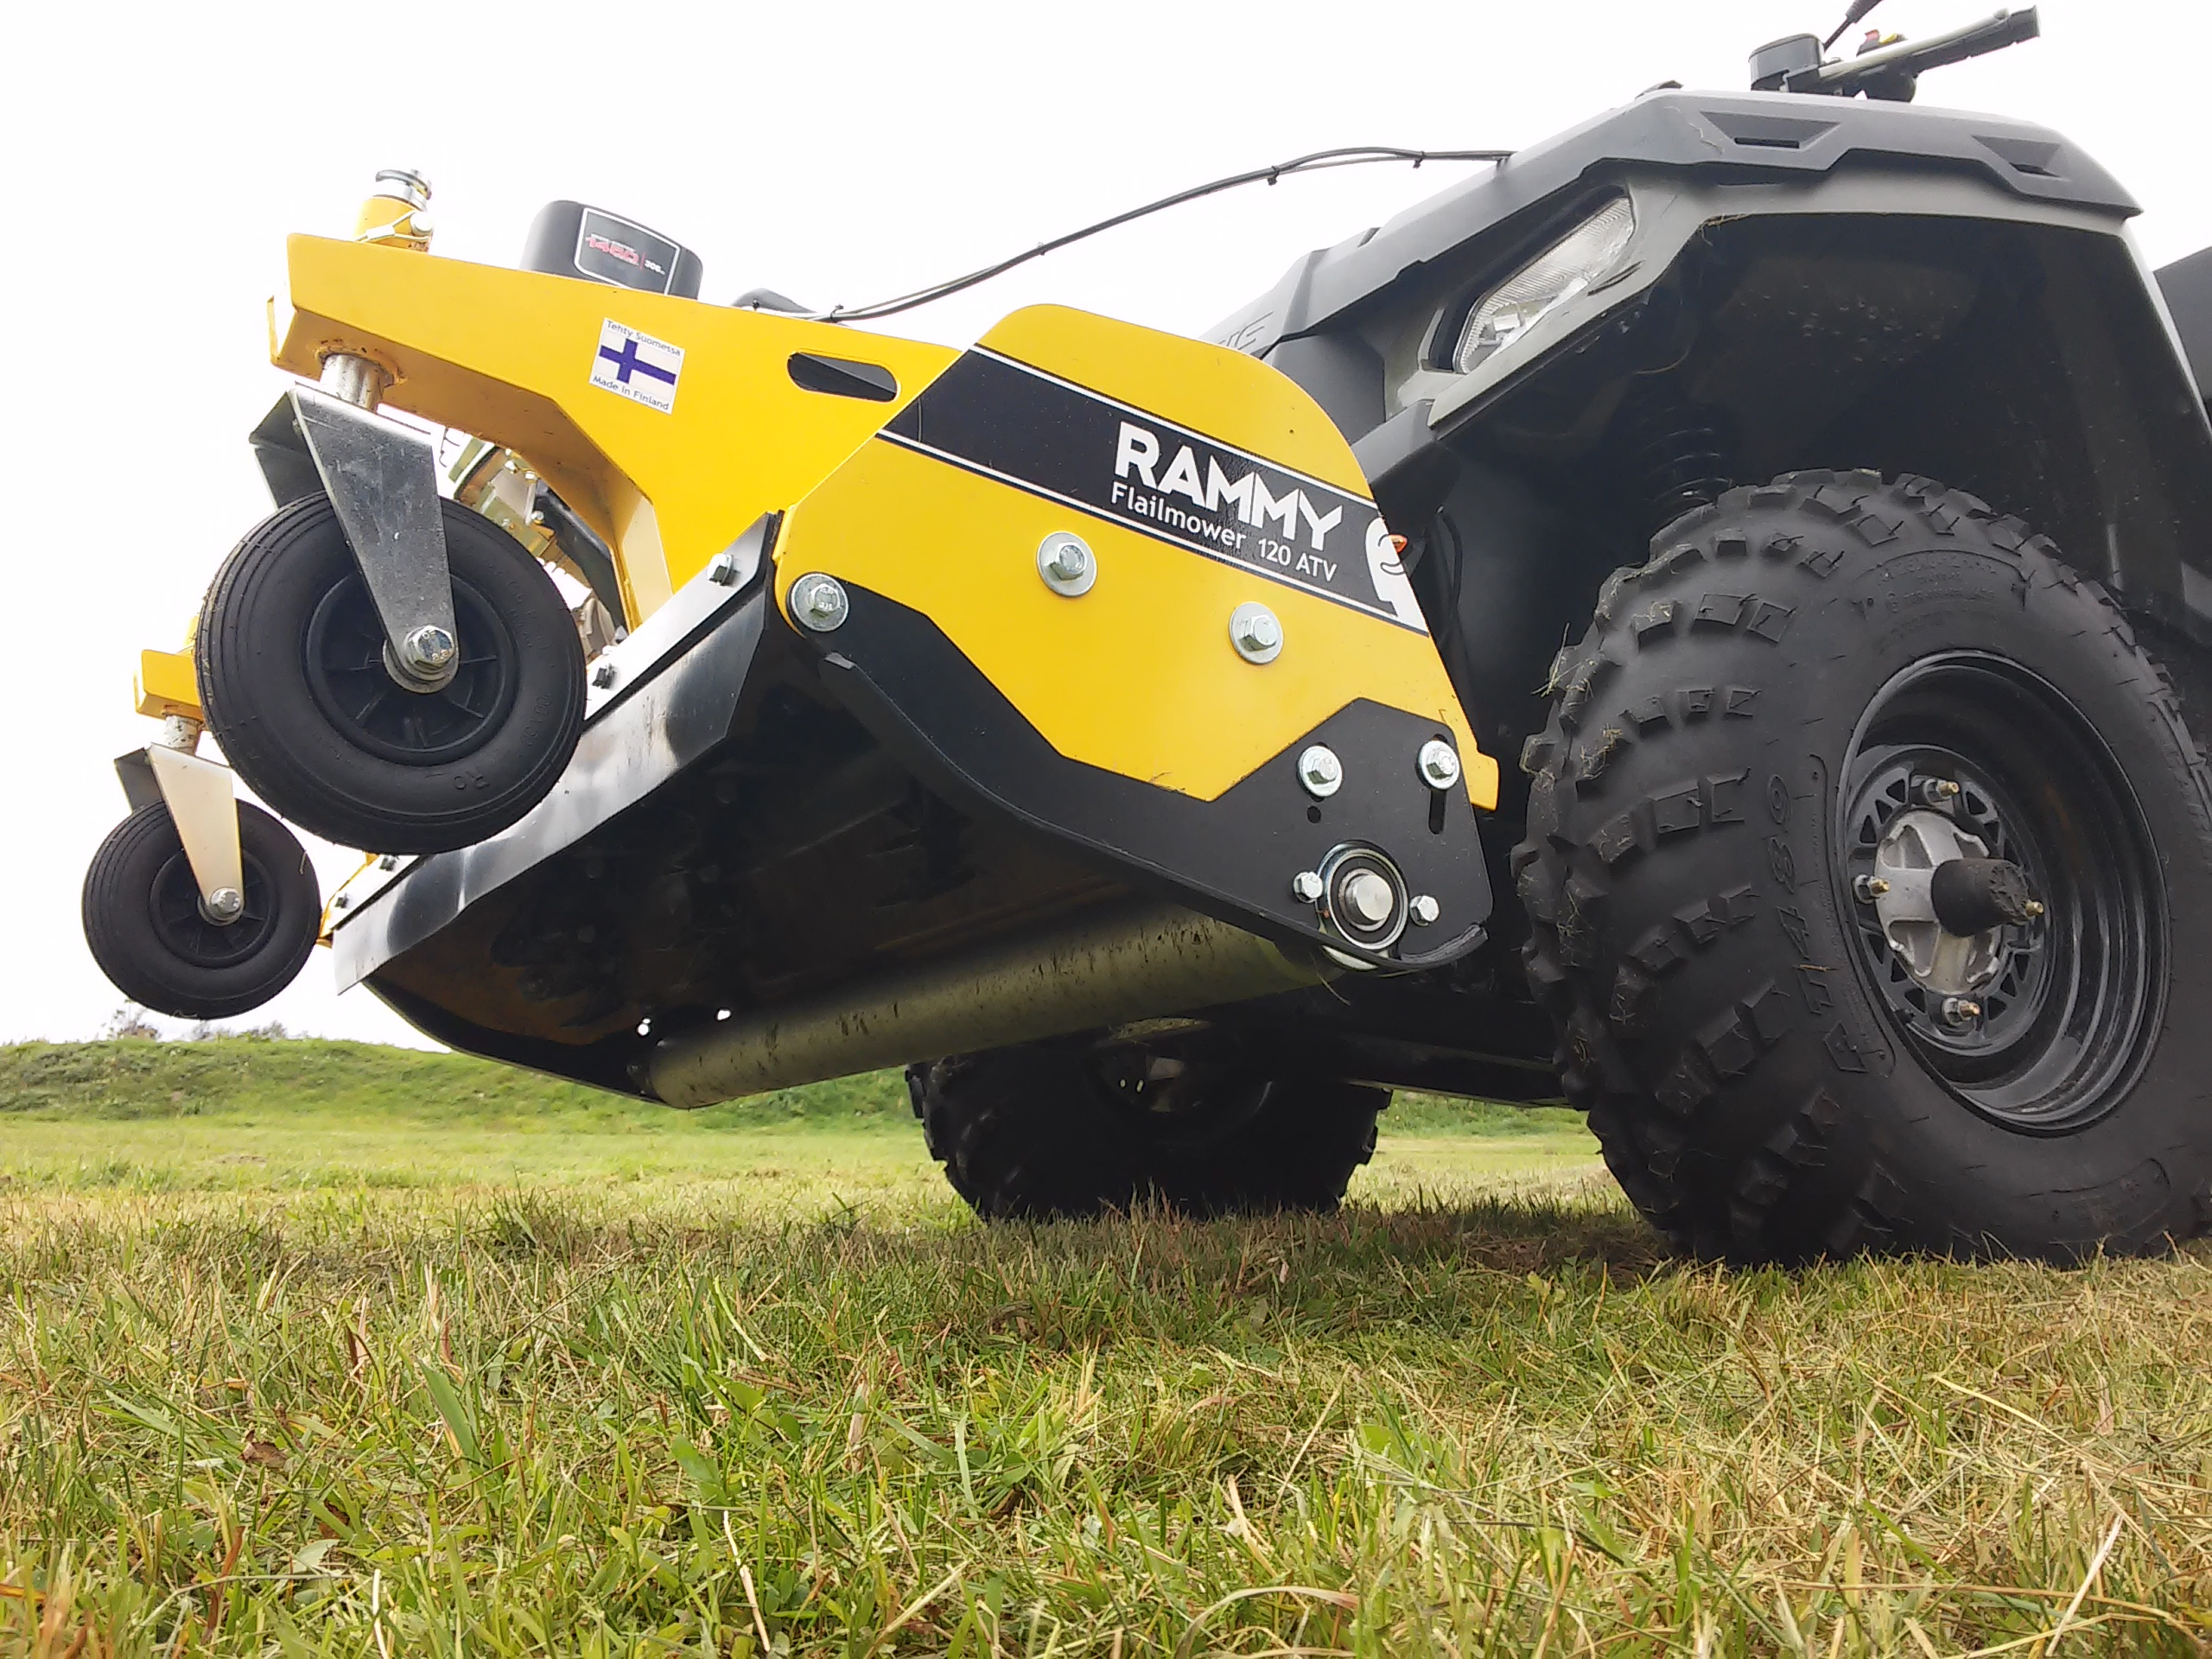 rammy-flailmower-120-atv-2015_3